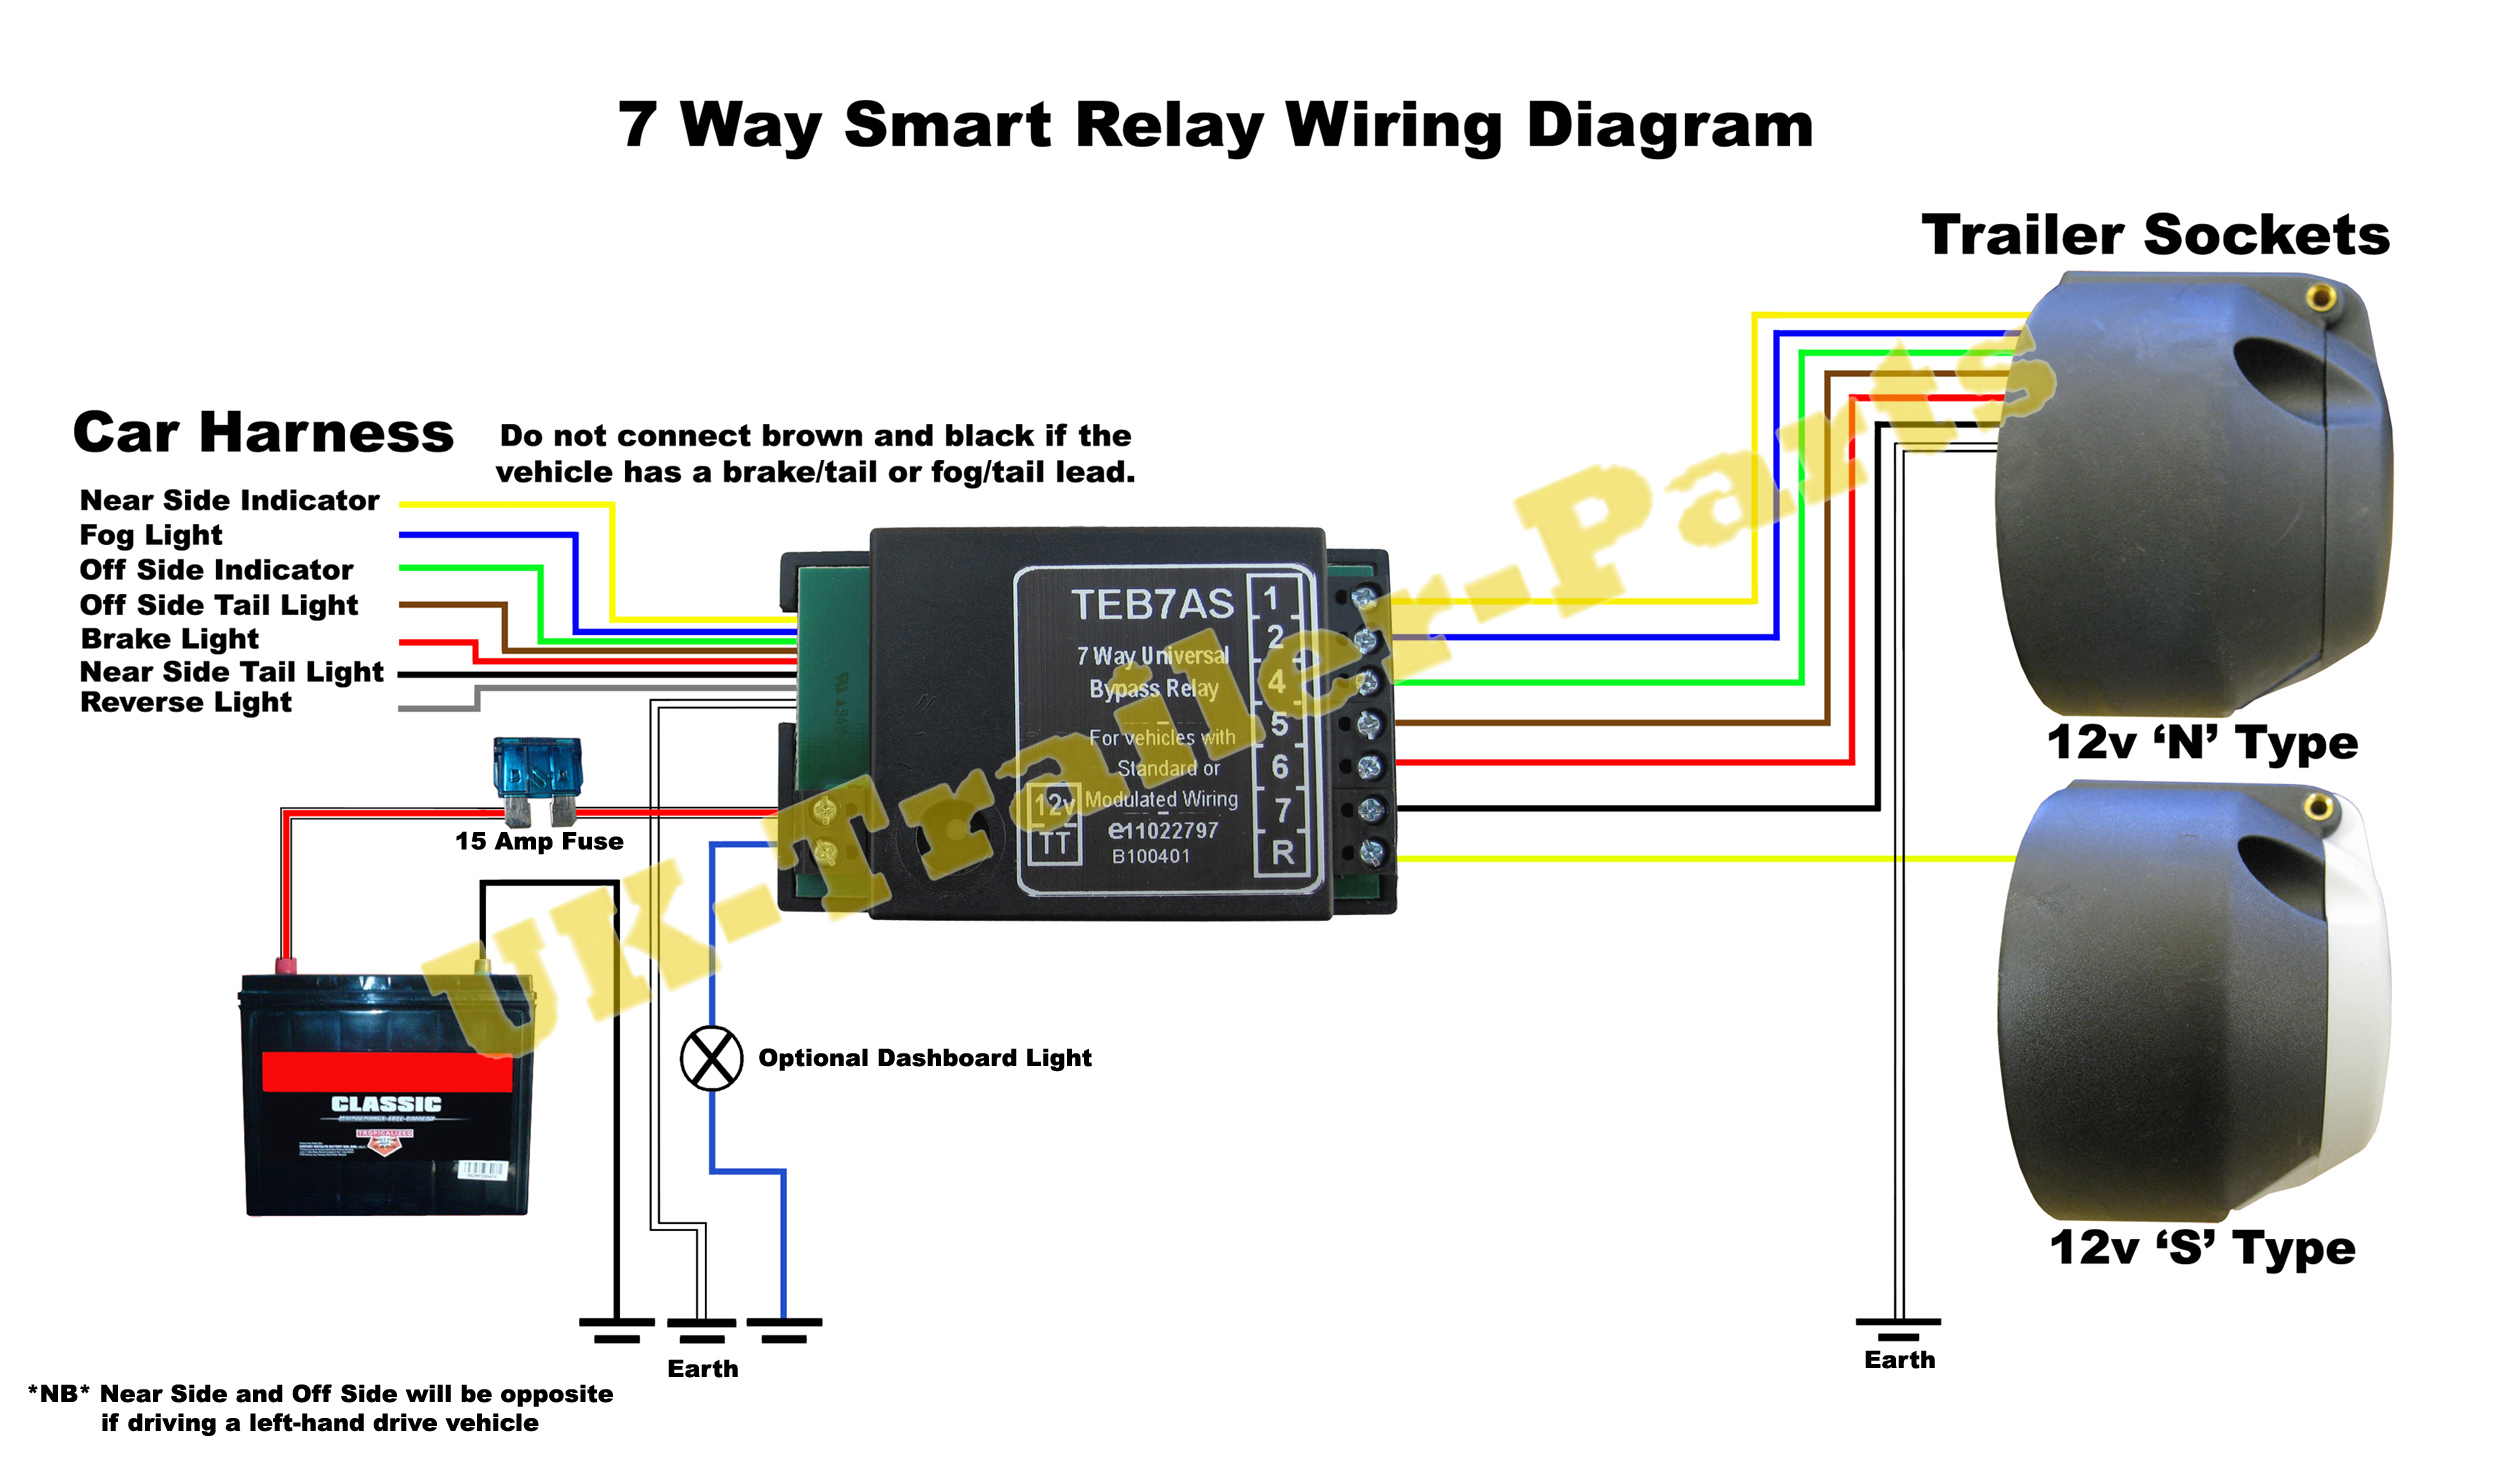 smart relay wiring diagram2 7 way universal bypass relay wiring diagram uk trailer parts volvo v70 towbar wiring diagram at nearapp.co